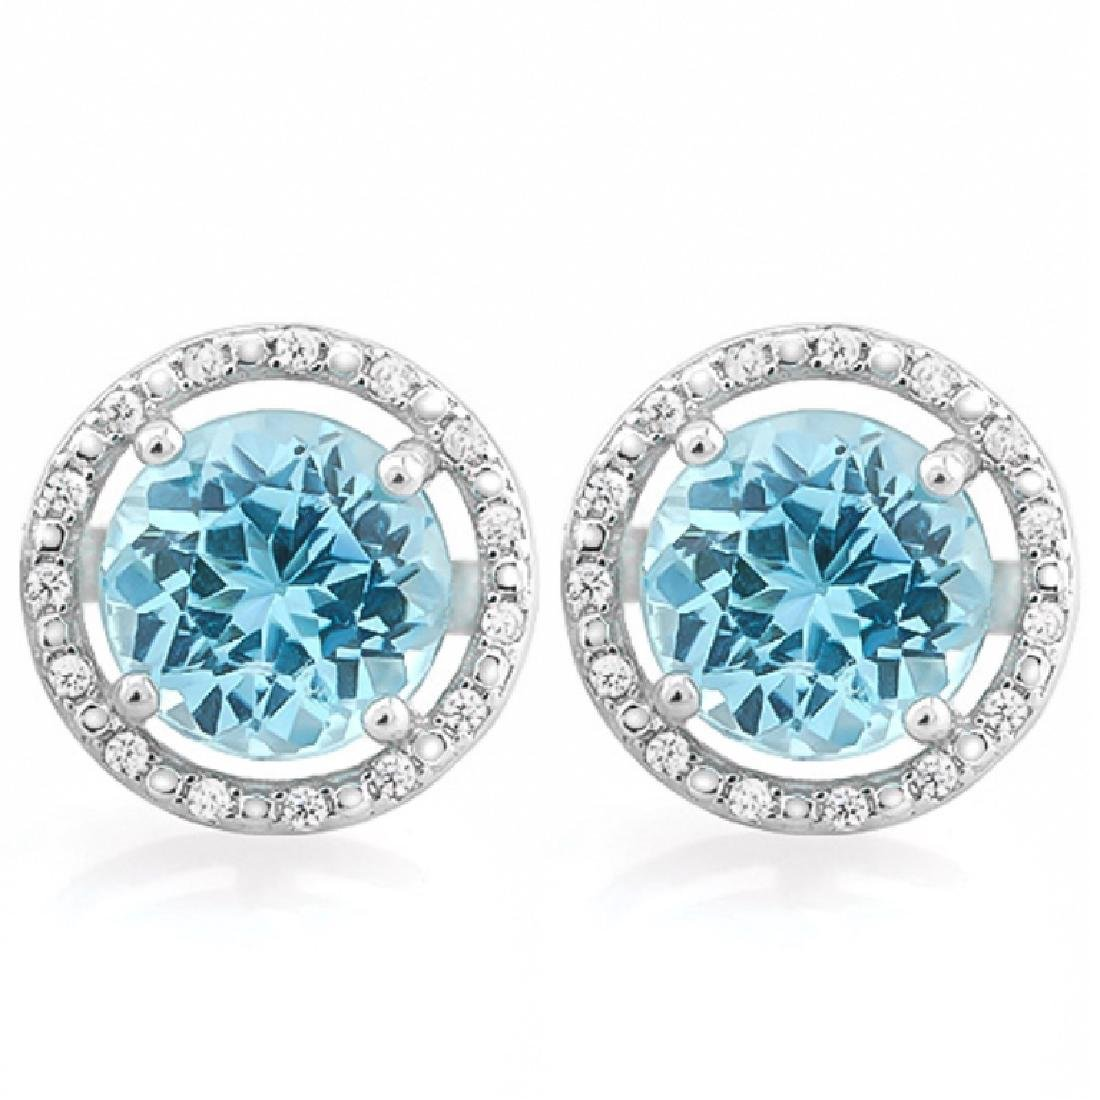 GLAM 4CT BLUE TOPAZ/DIAMOND HALO EARRINGS